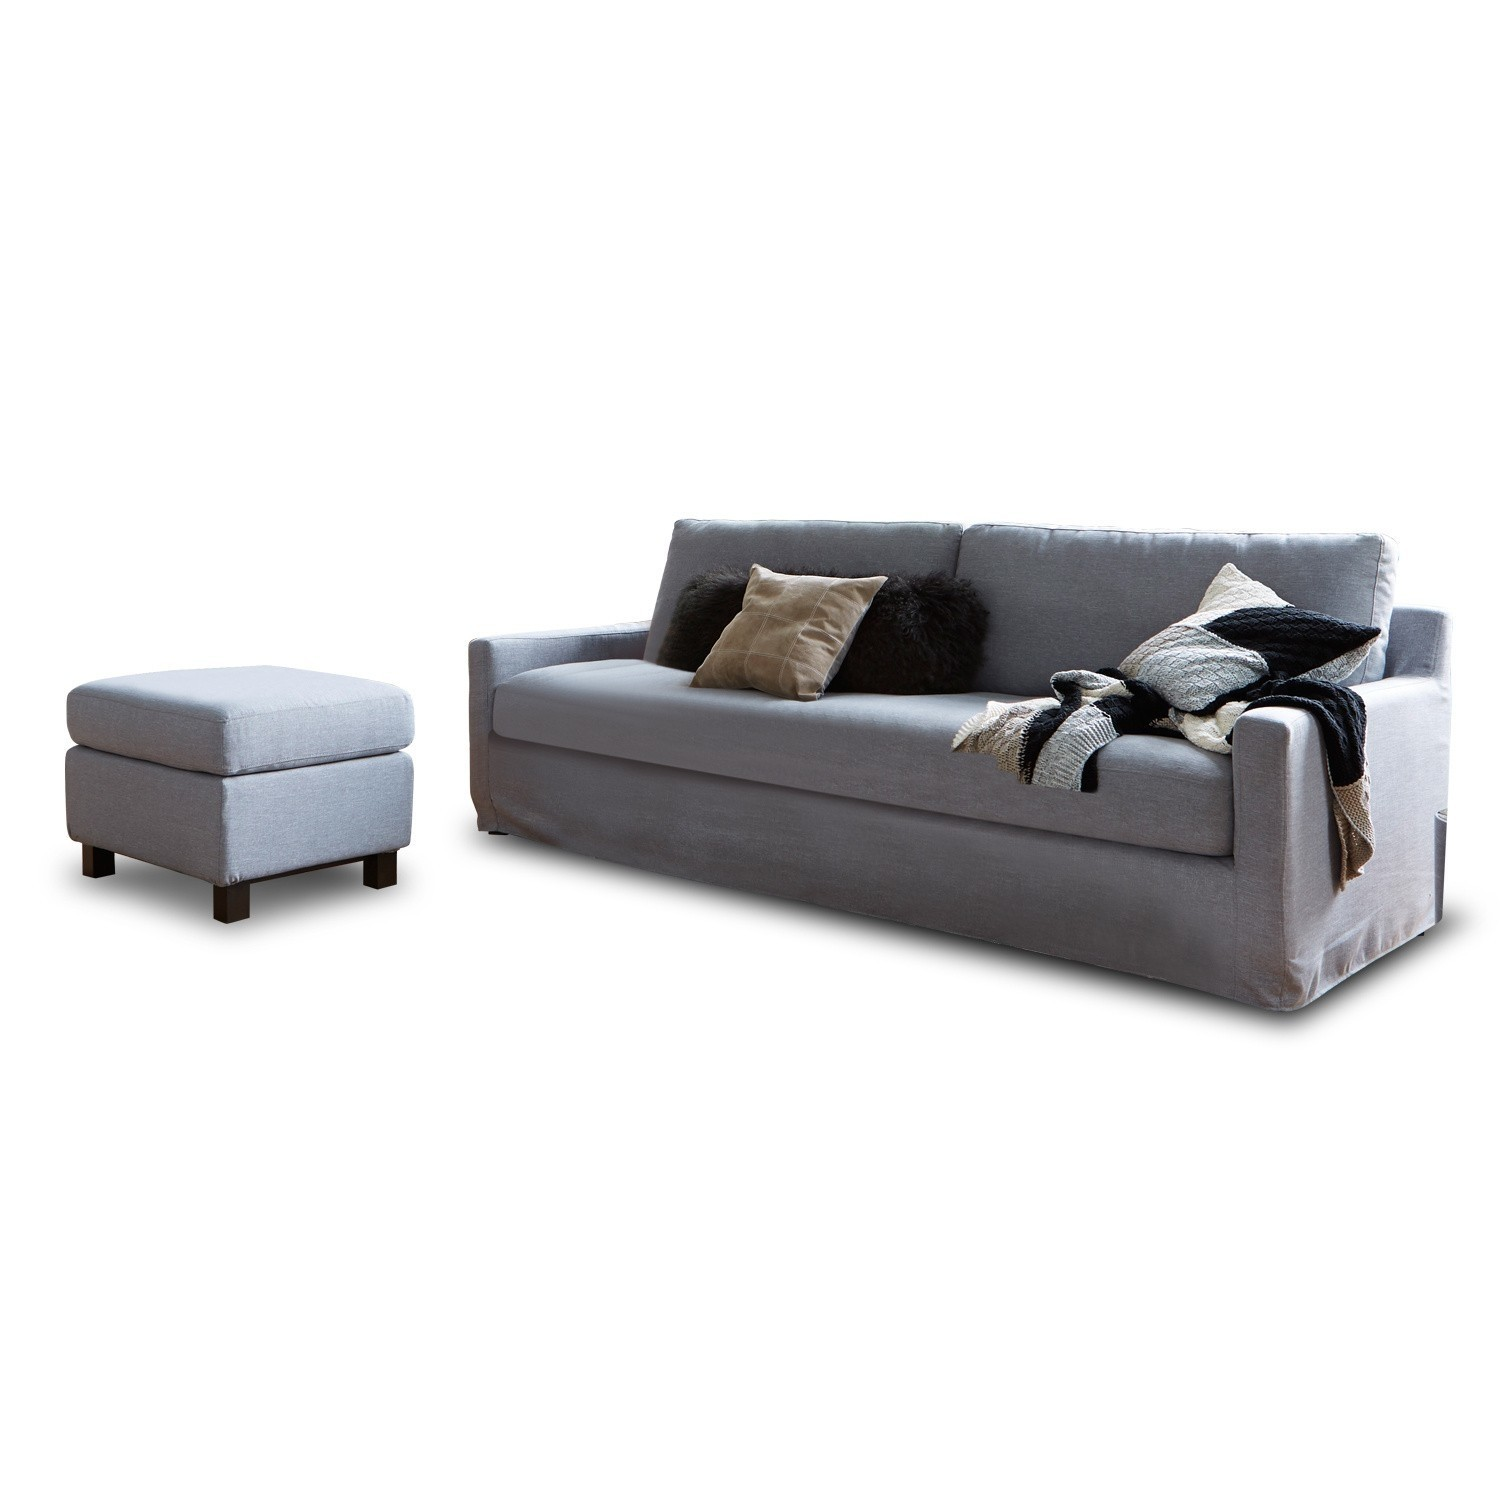 sofa mit hocker burie loberon. Black Bedroom Furniture Sets. Home Design Ideas